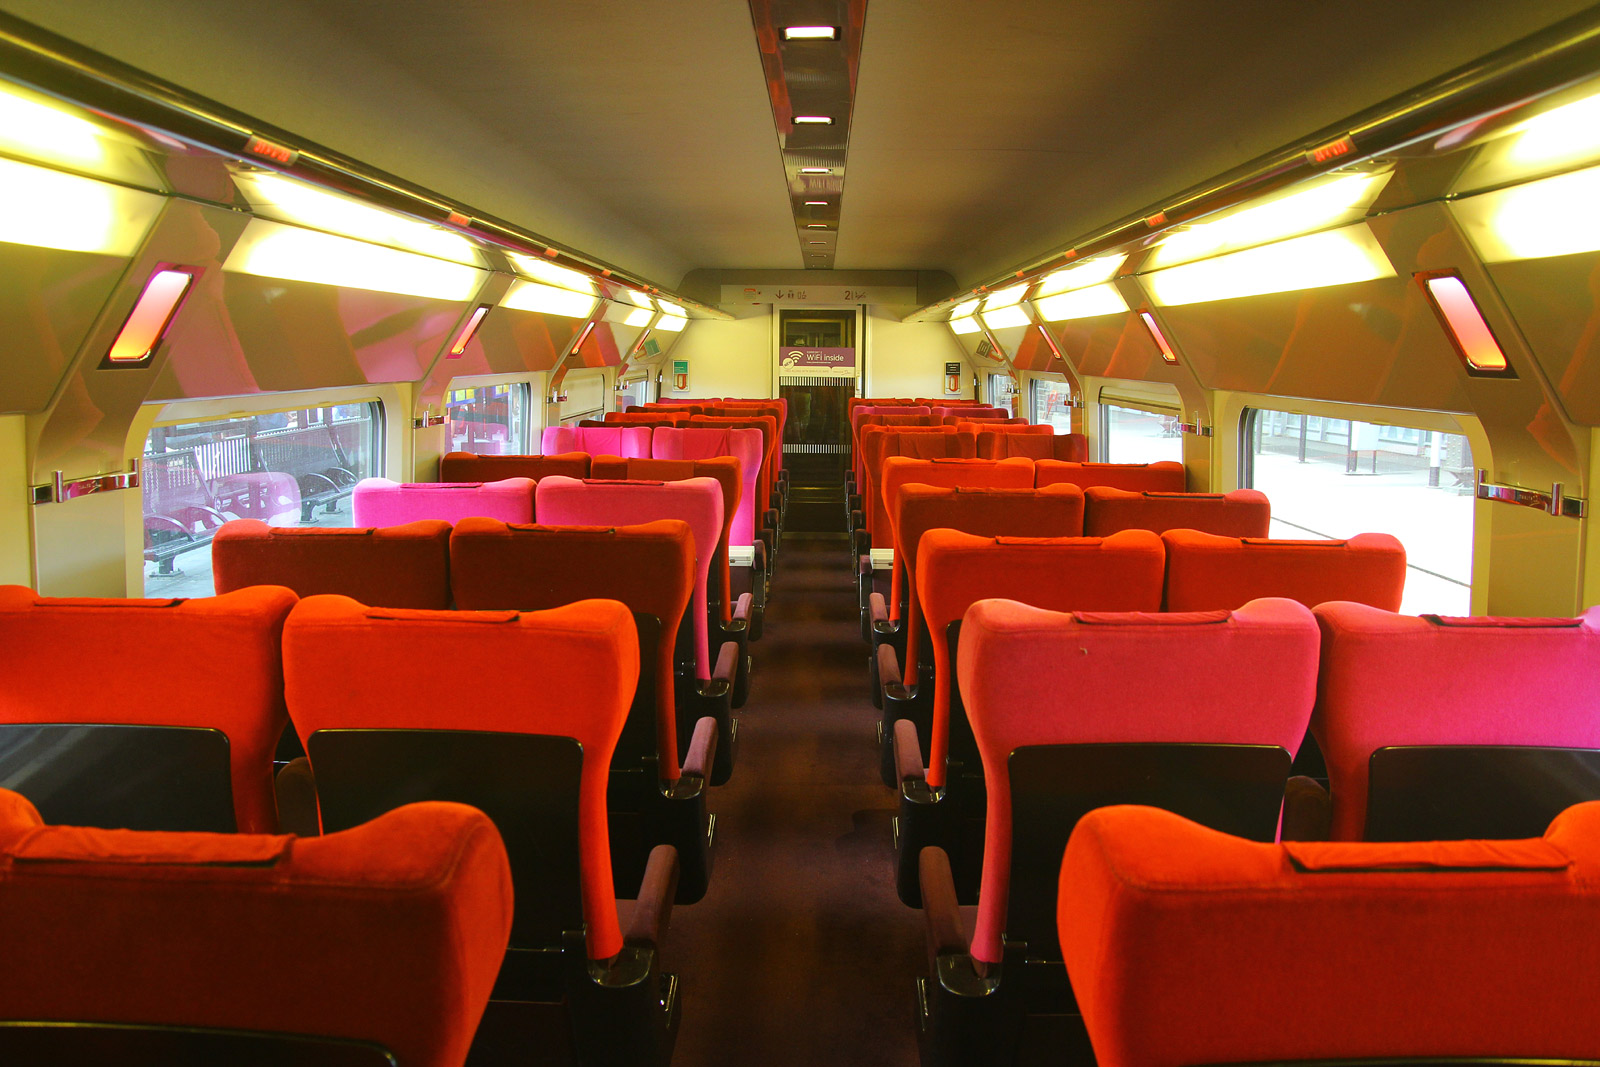 Thalys Interior Shot, Amsterdam, August 5th 2013